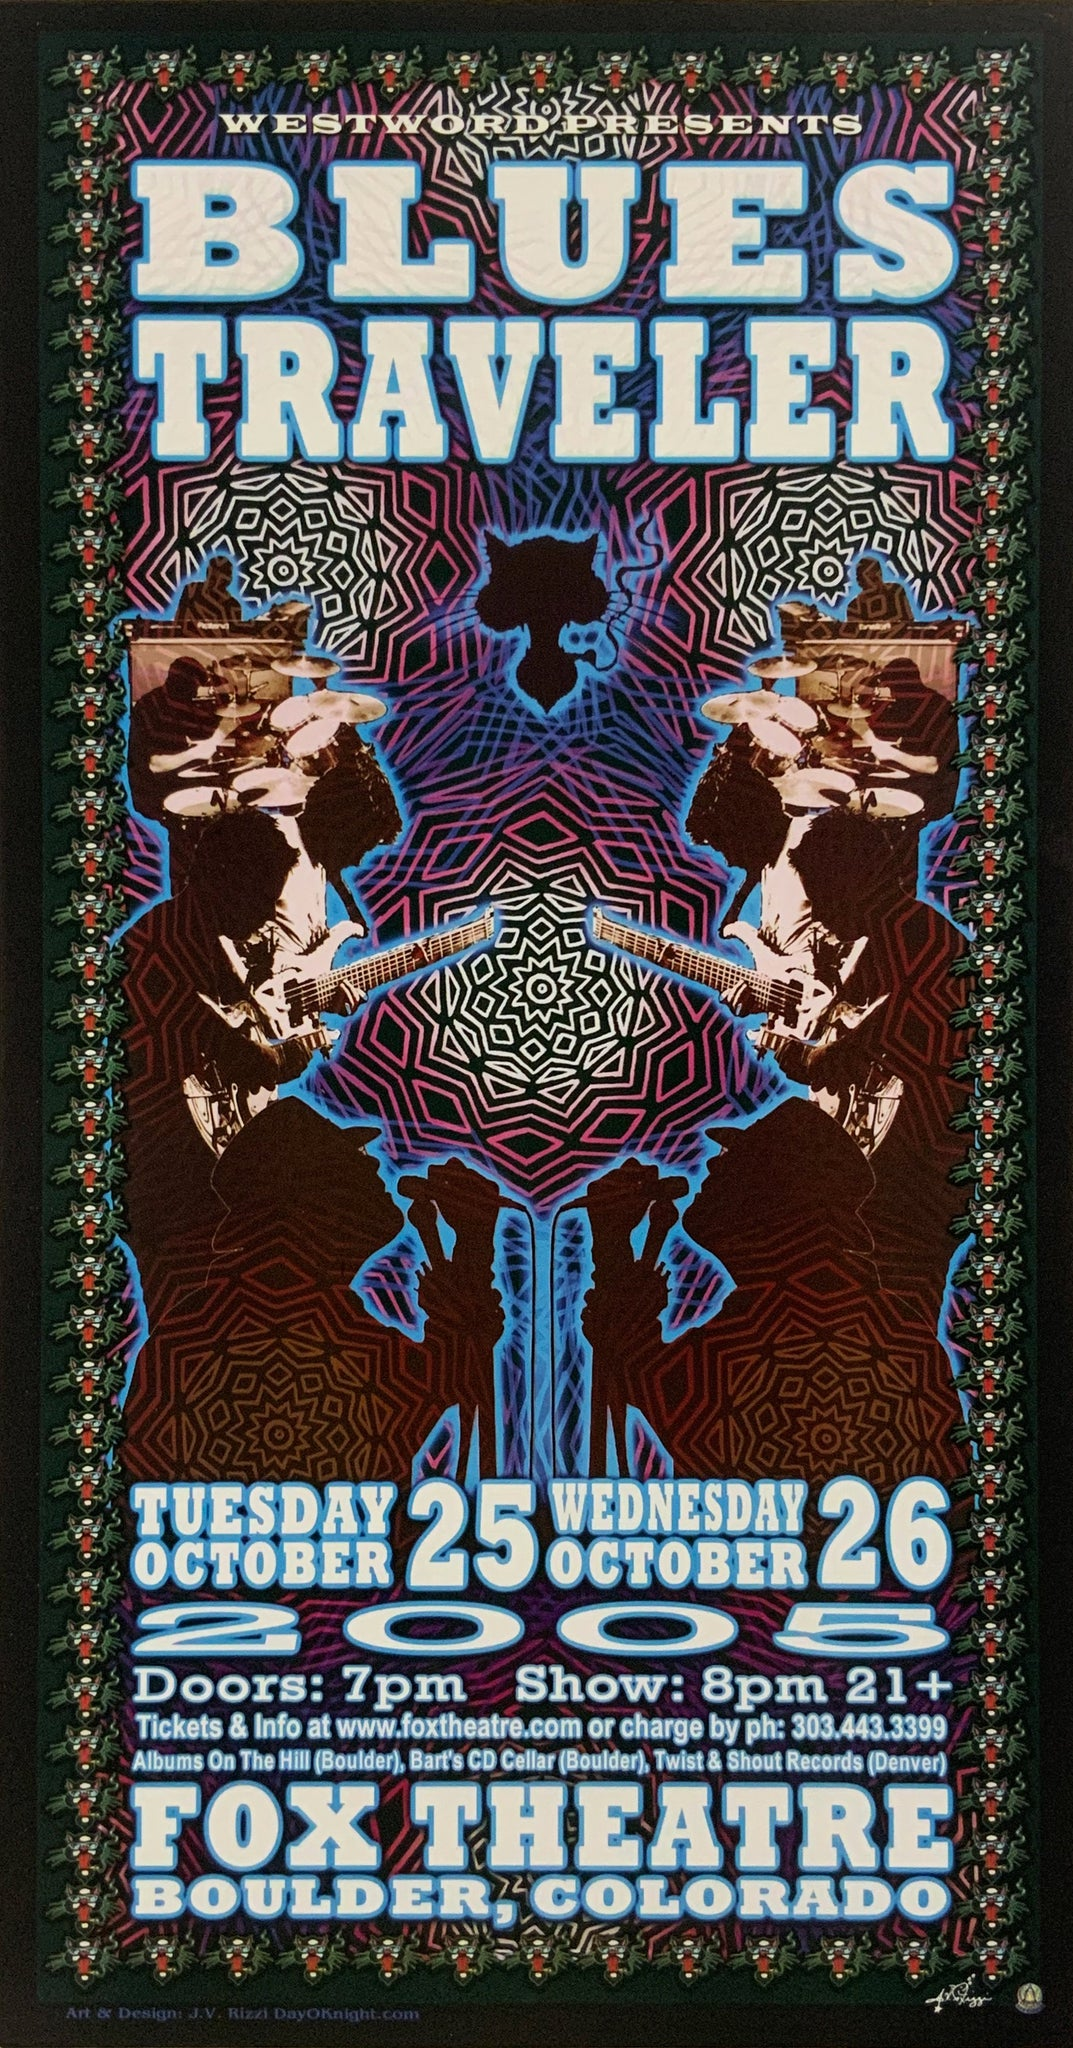 Blues Traveler 2005 Fox Theatre October 25th Poster